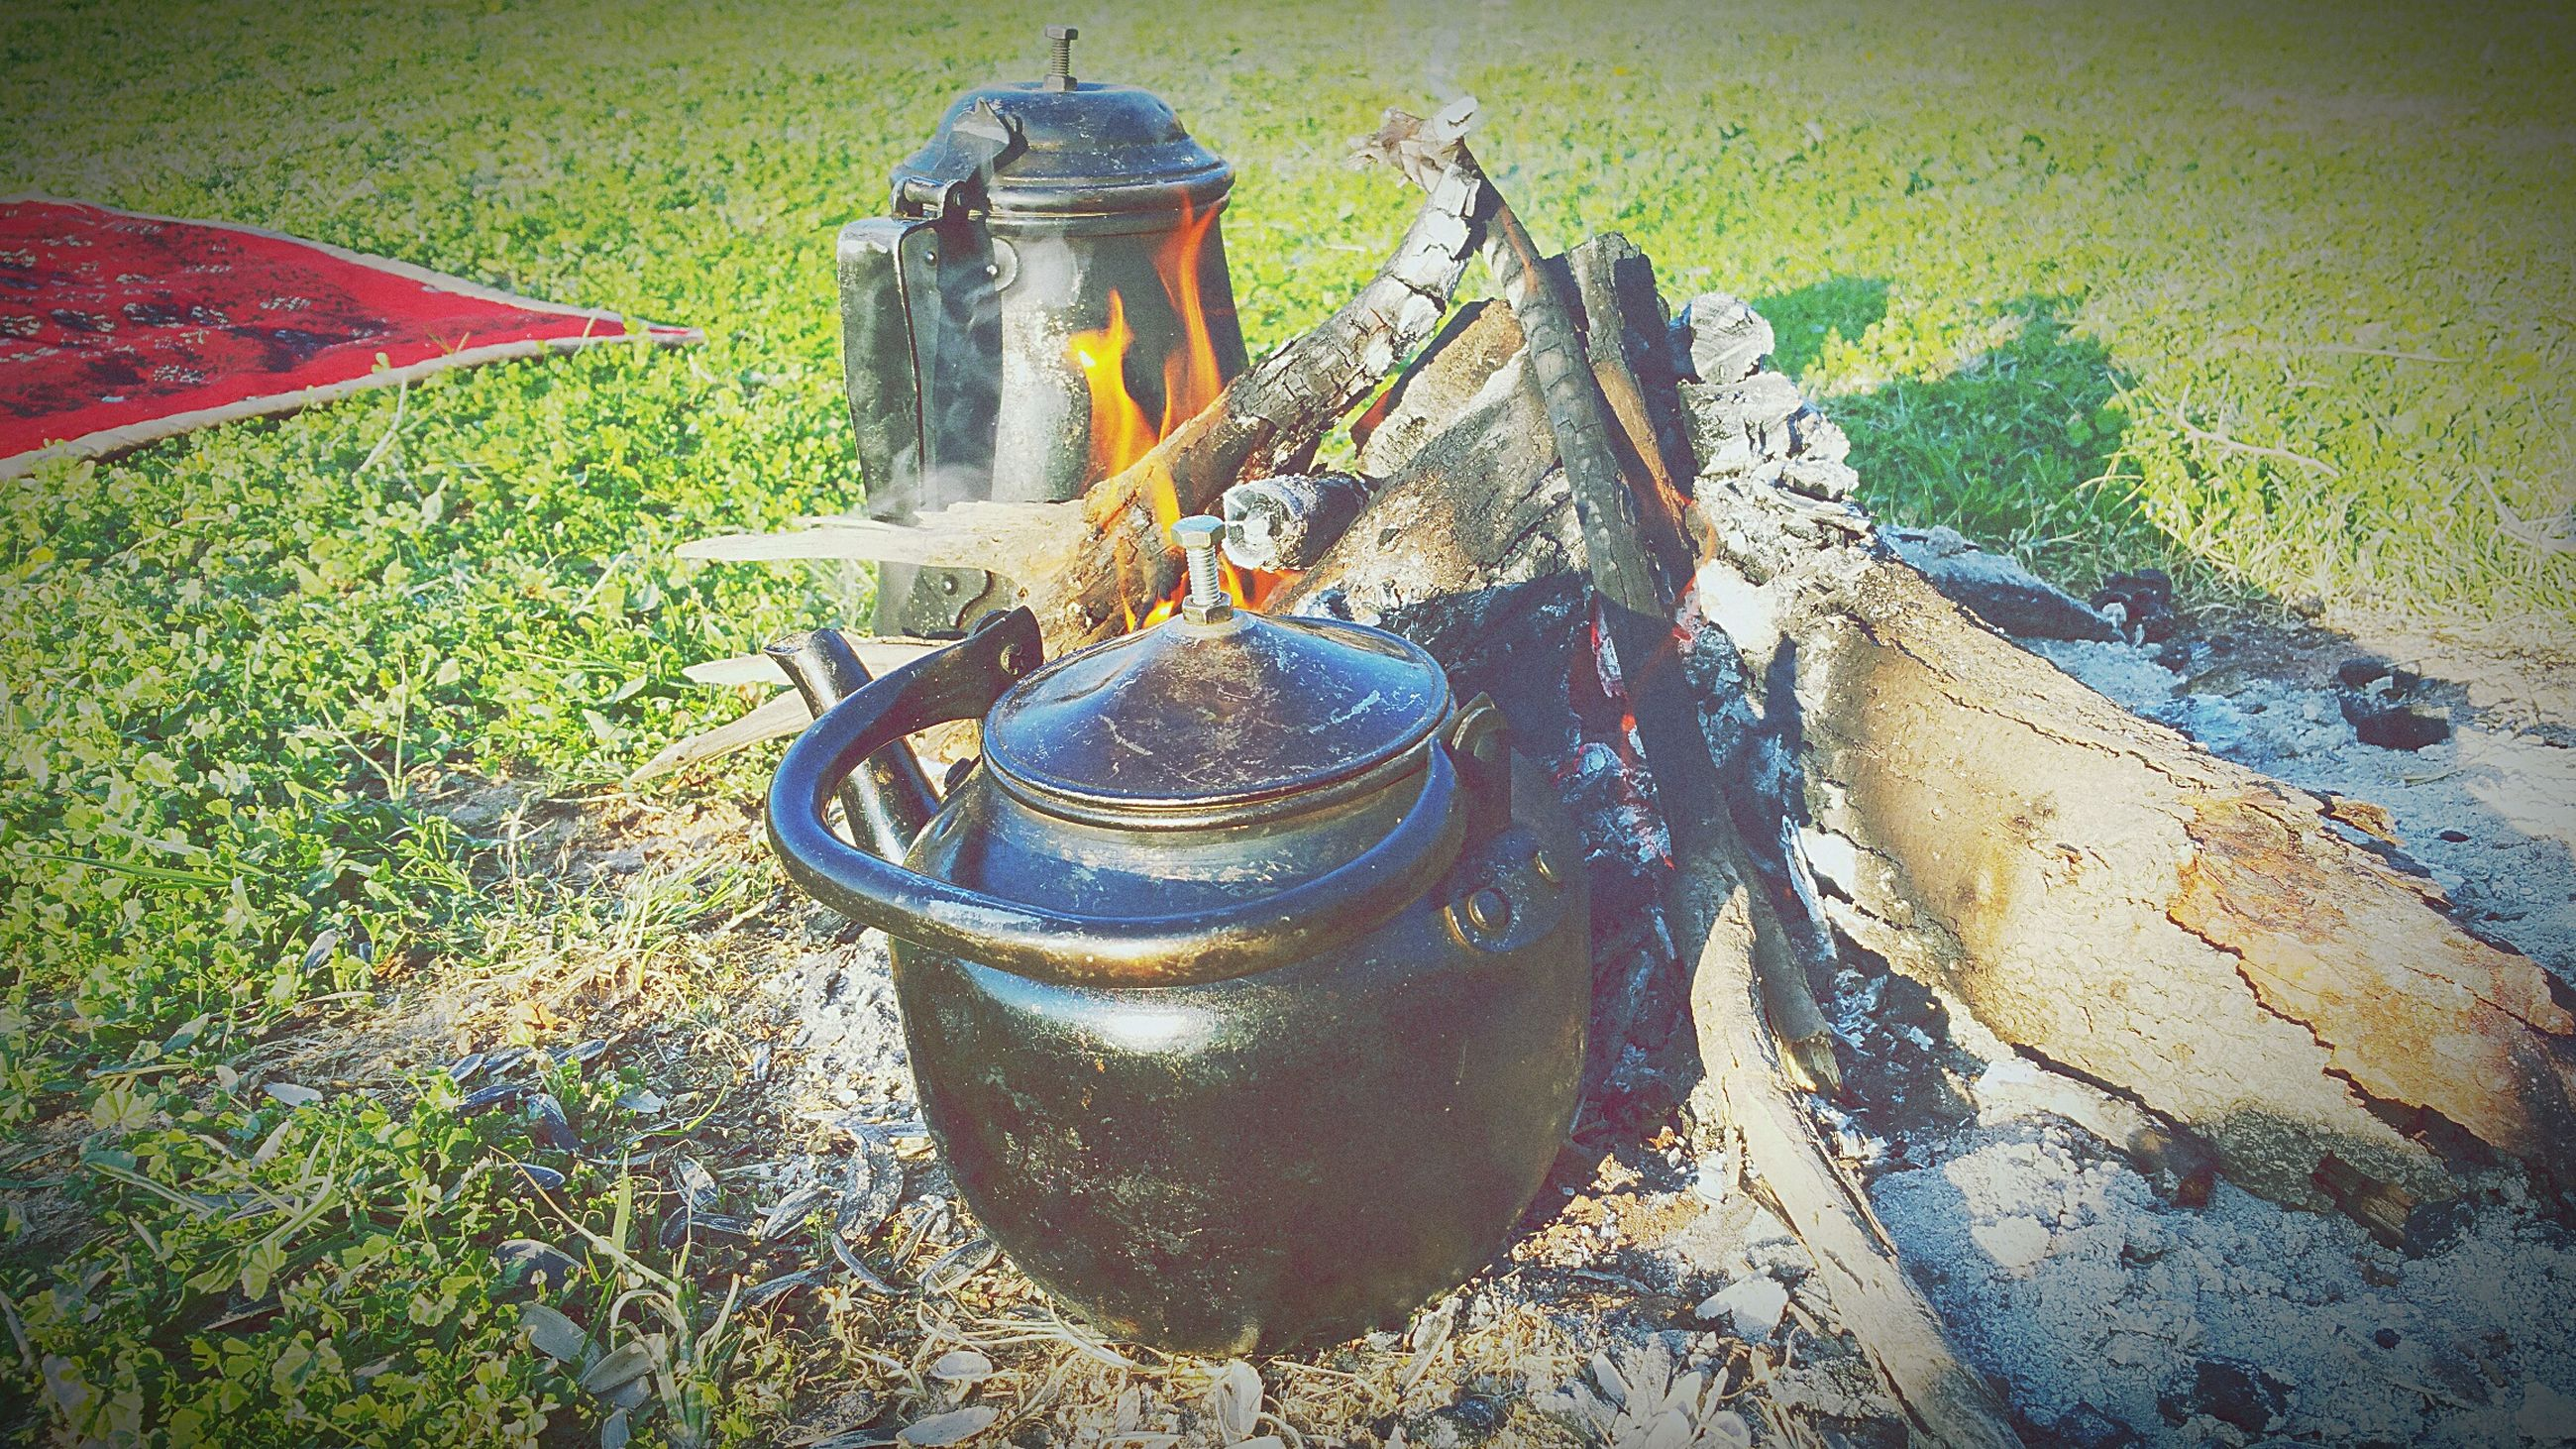 container, land, nature, field, grass, day, metal, plant, no people, outdoors, bucket, high angle view, old, burning, preparation, environment, heat - temperature, landscape, fire, rural scene